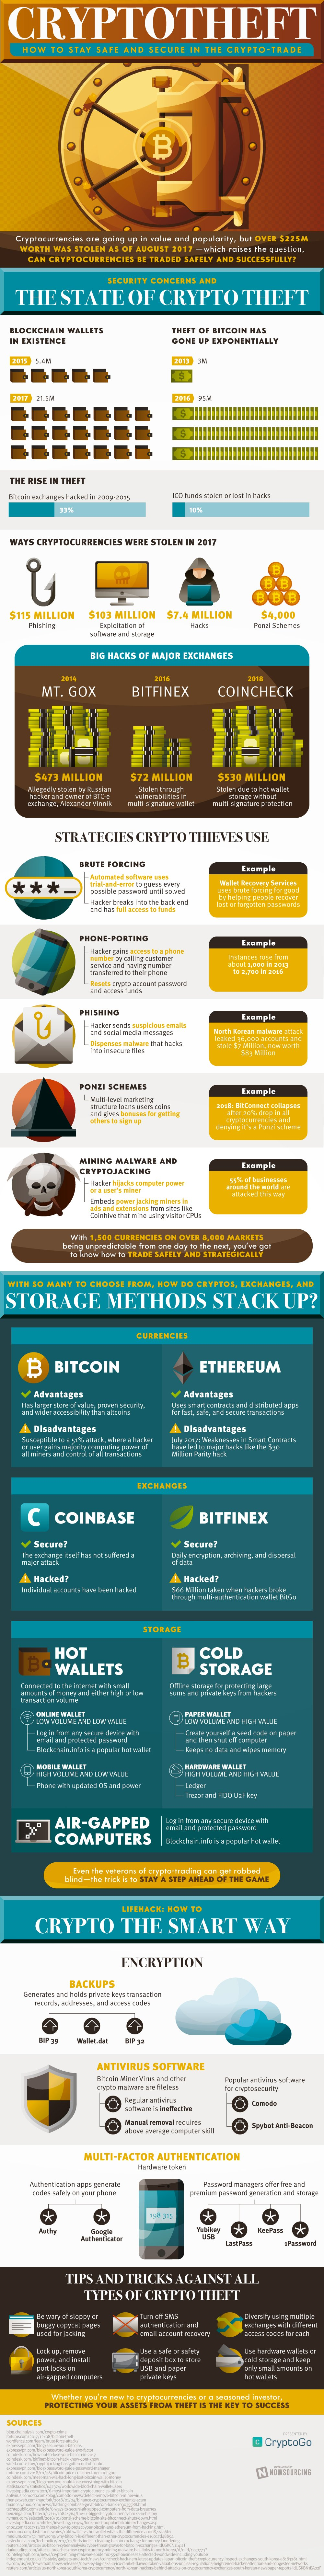 Cryptodiefstal infographic